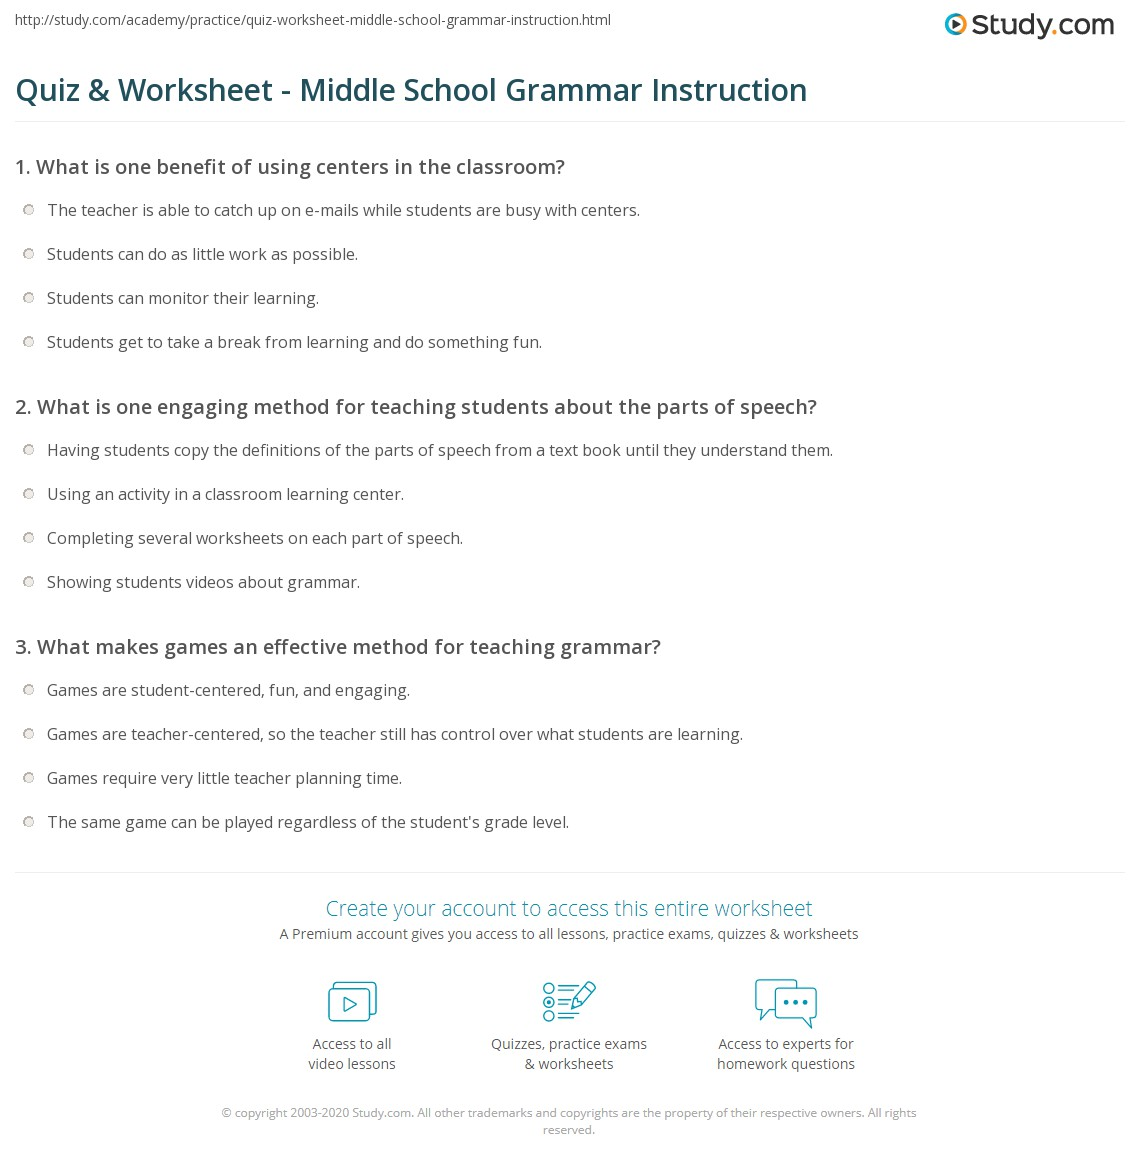 Middle School Grammar Worksheets - Imatei